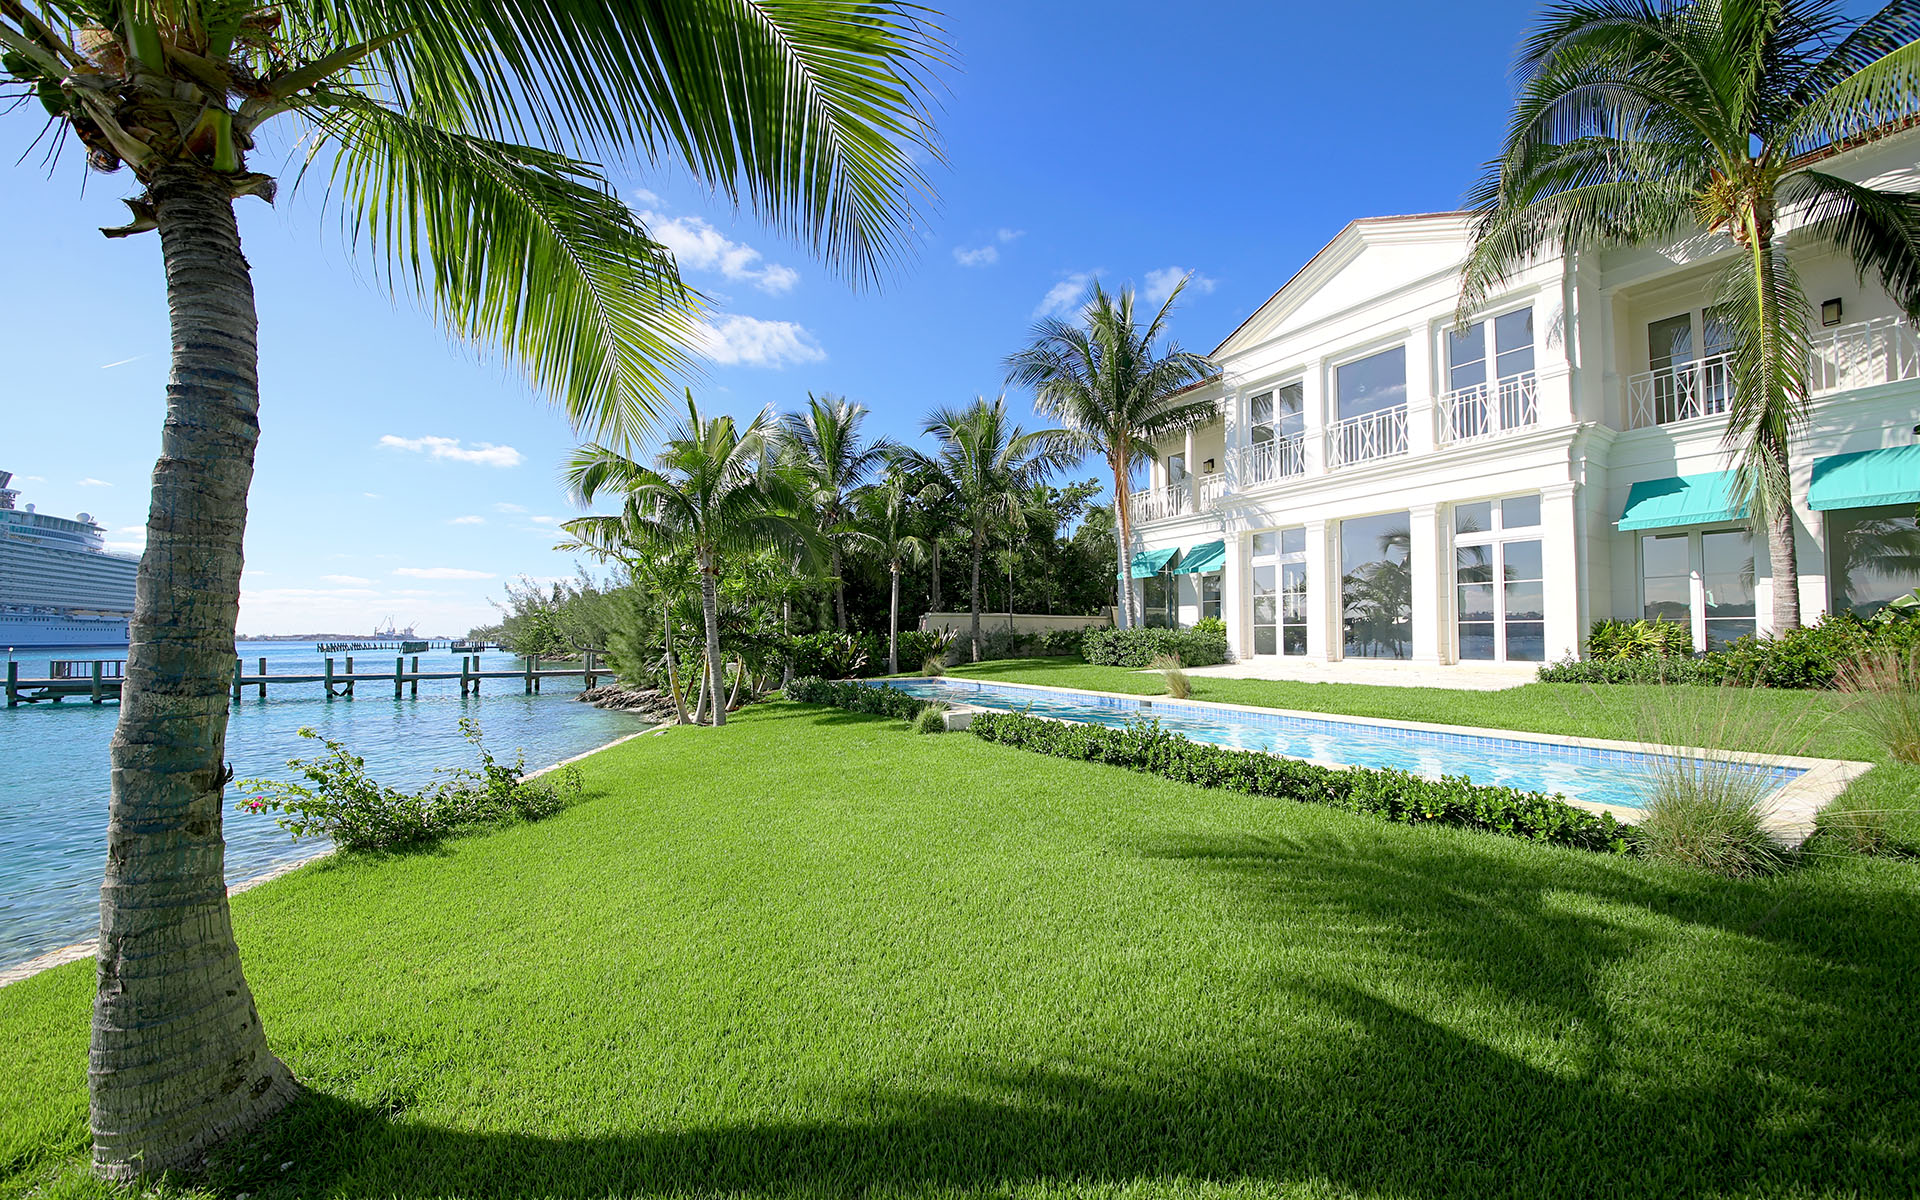 Single Family Home for Sale at Gorgeous Waterfront Home on Paradise Island - MLS 31737 Nassau New Providence And Vicinity